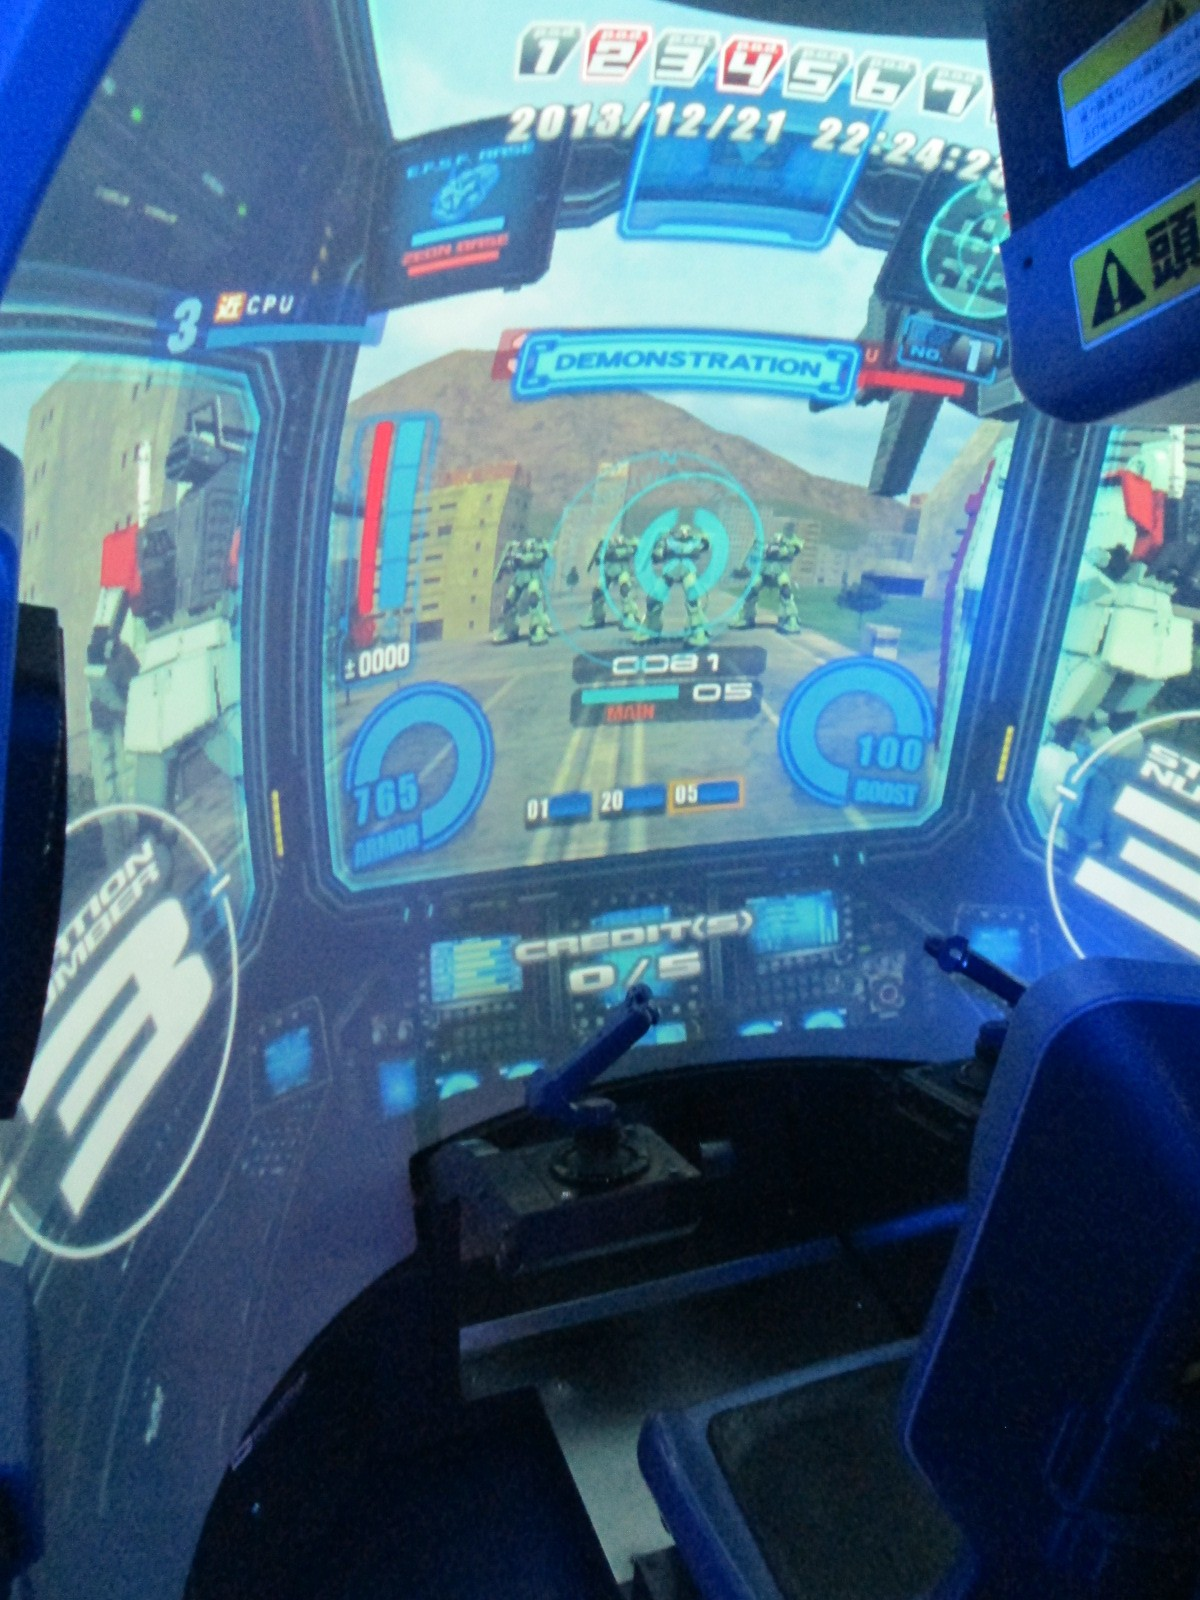 The very immersive cockpit of a mechwarrior game.